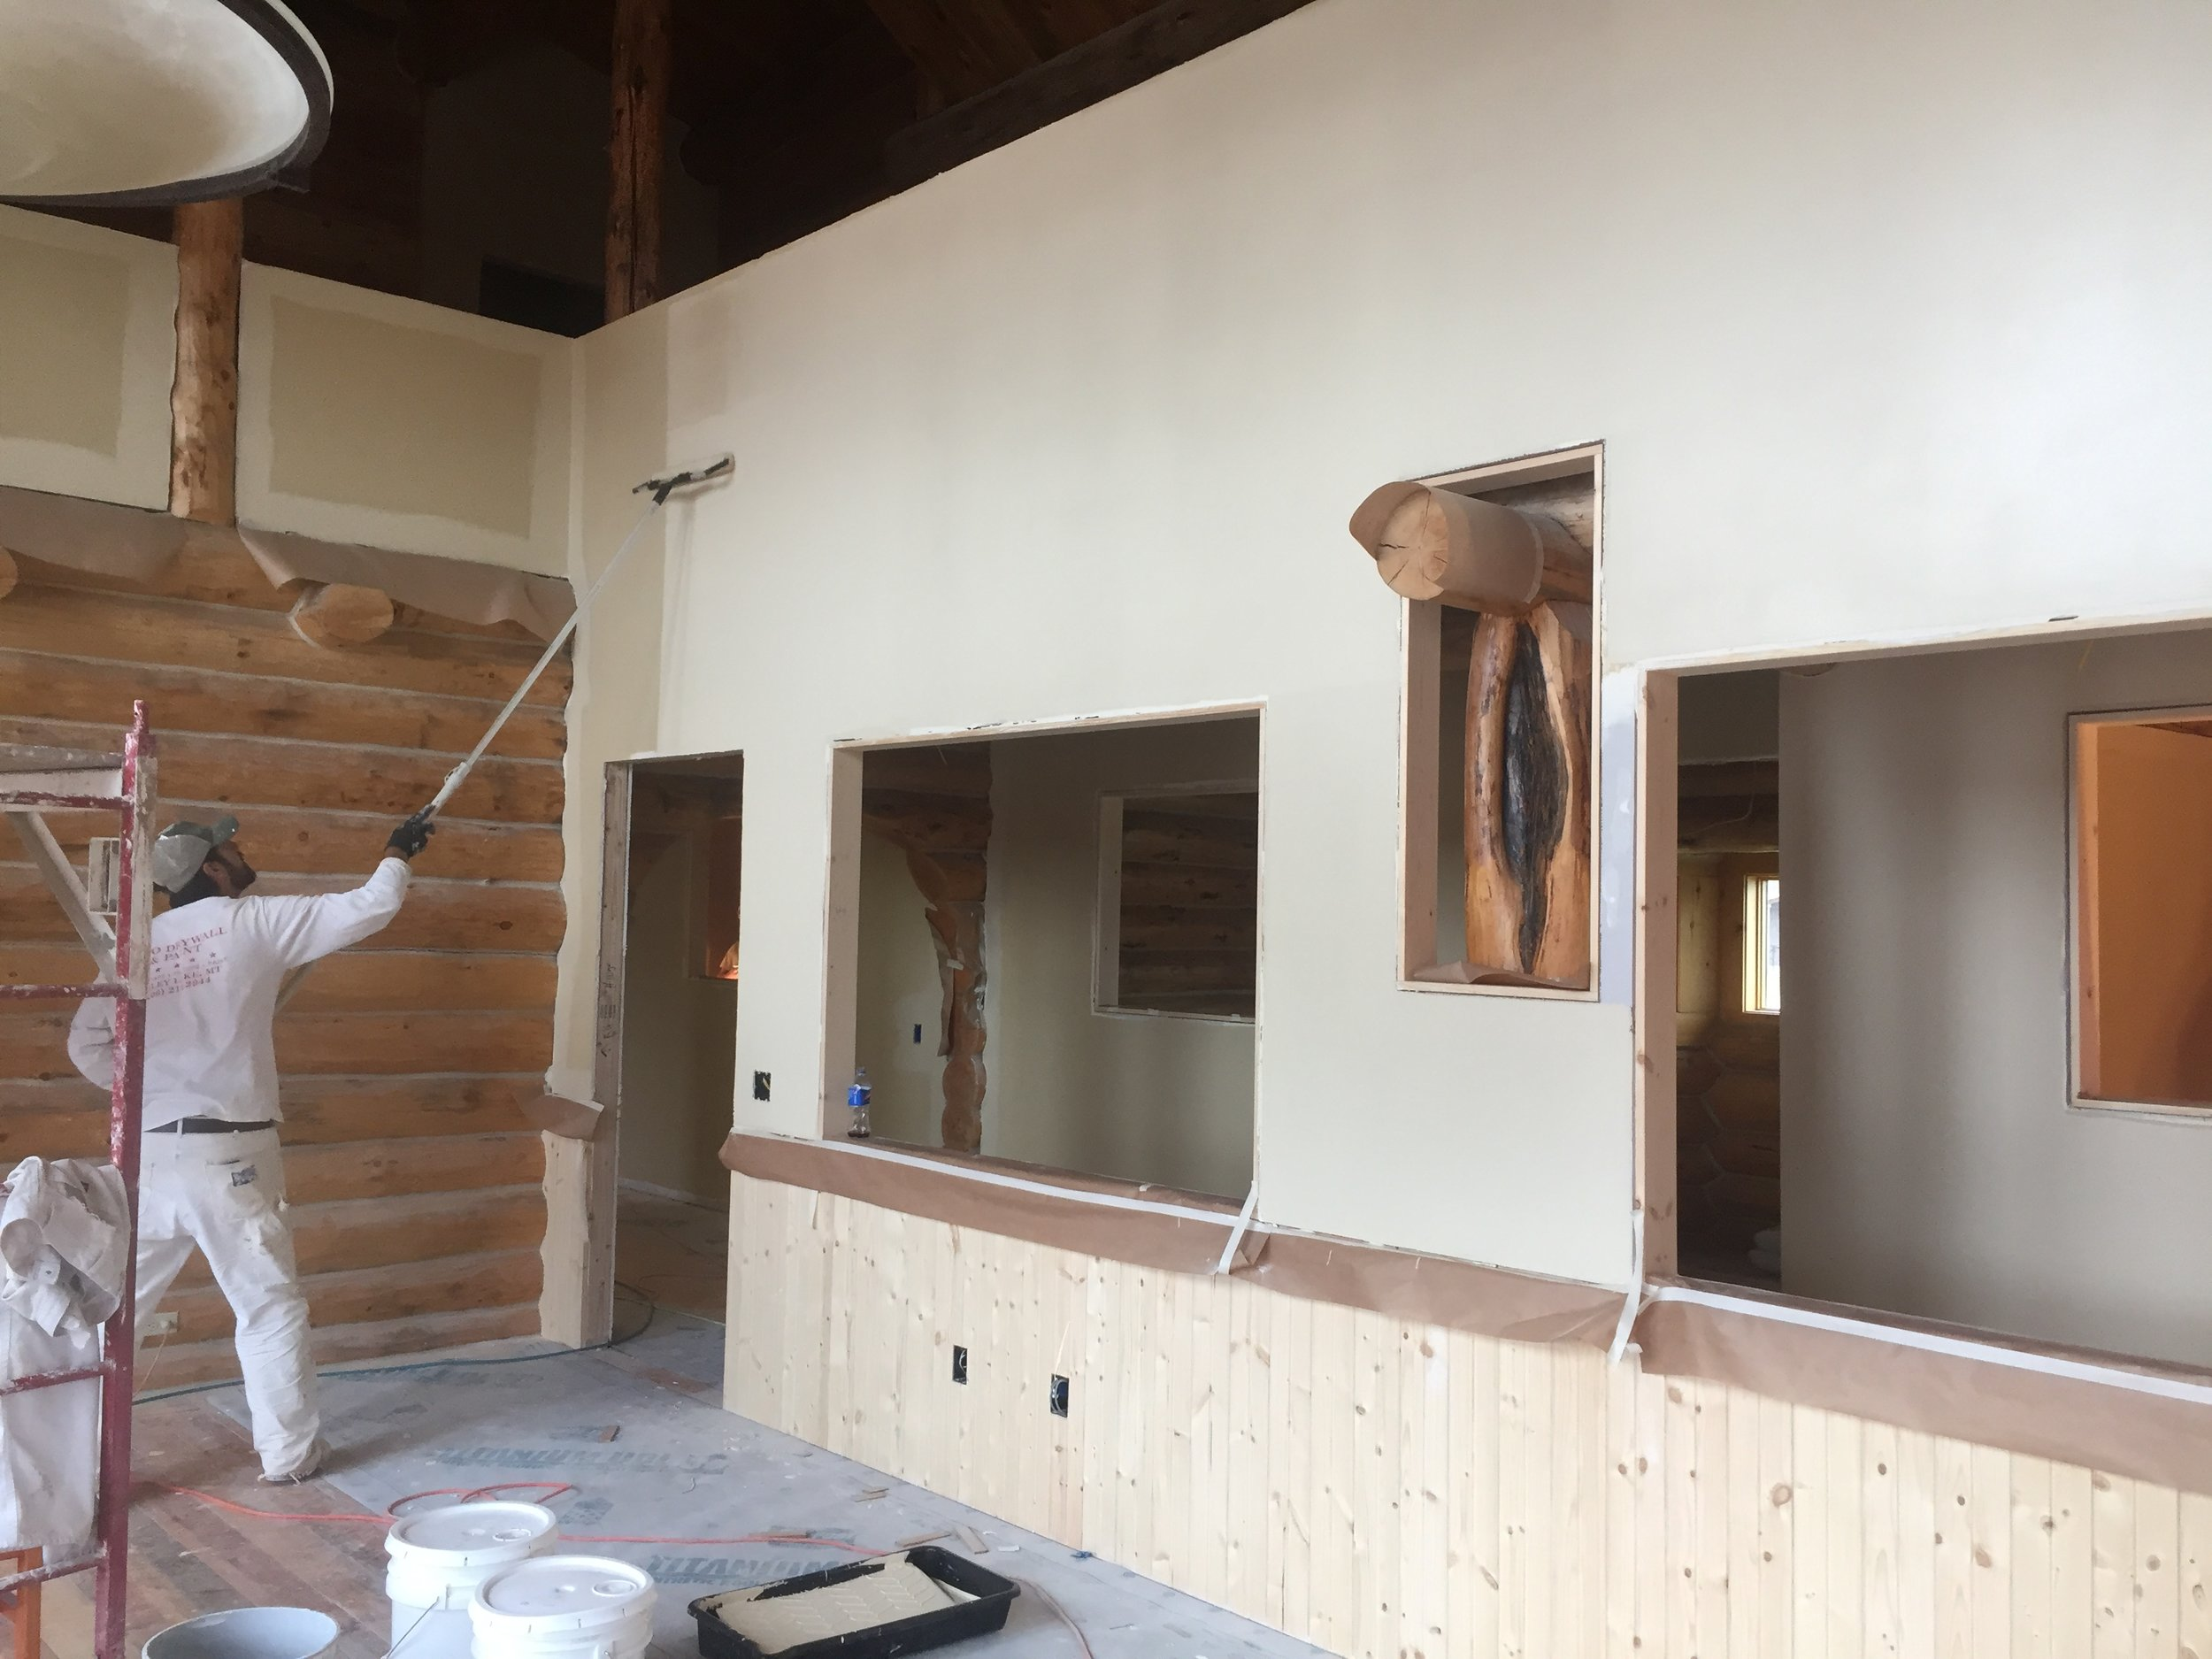 The home stretch - May: Walls are getting painted, trim is being meticulously cut, and a new home is in sight. Come visit us Saturday June 15th for the grand opening of the new Seeley Lake Community Foundation building!